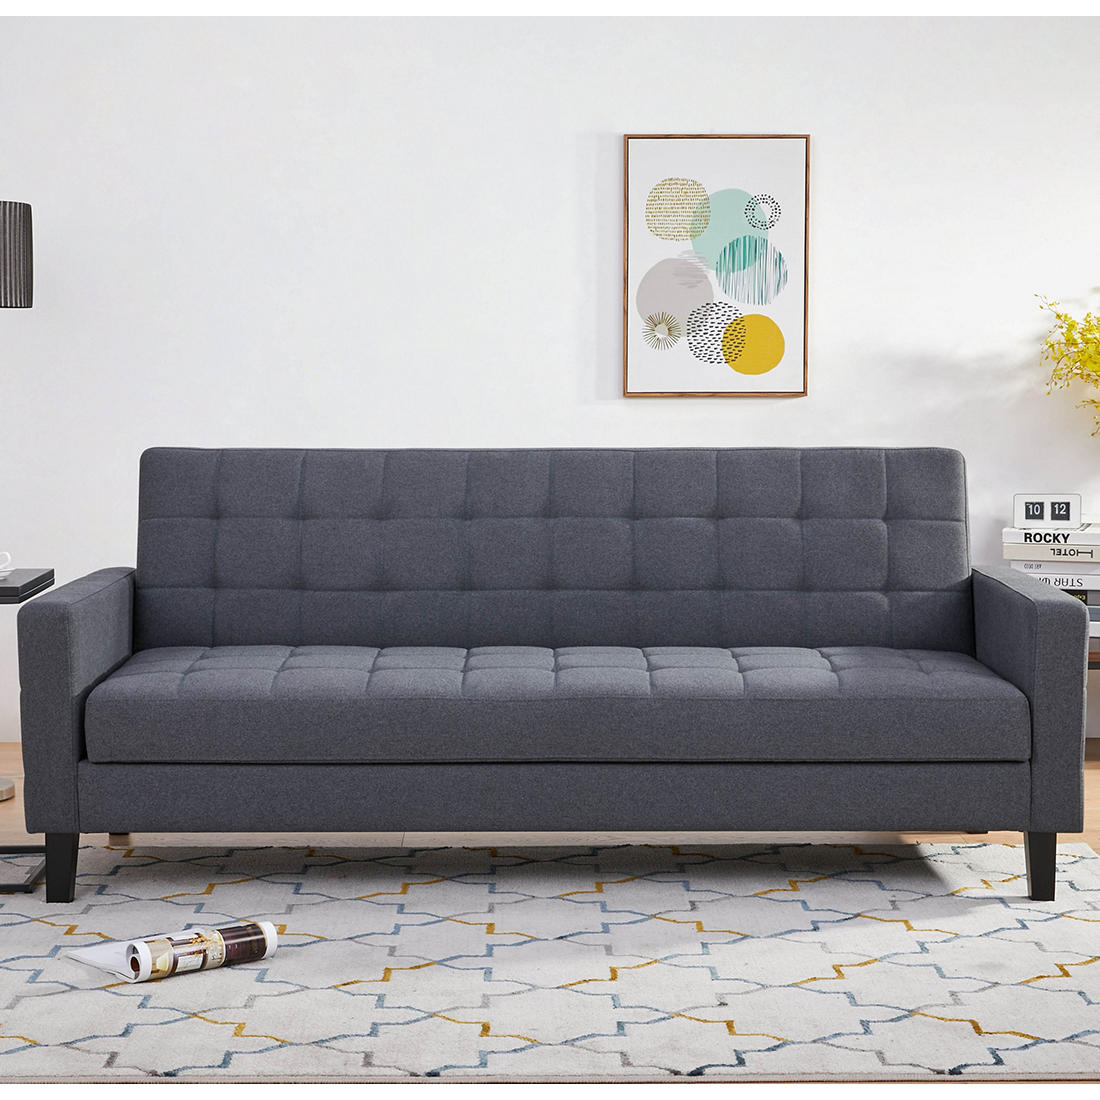 Stupendous Abbyson Living Jackson Click Clack Sofa Bed With Storage Gray Alphanode Cool Chair Designs And Ideas Alphanodeonline